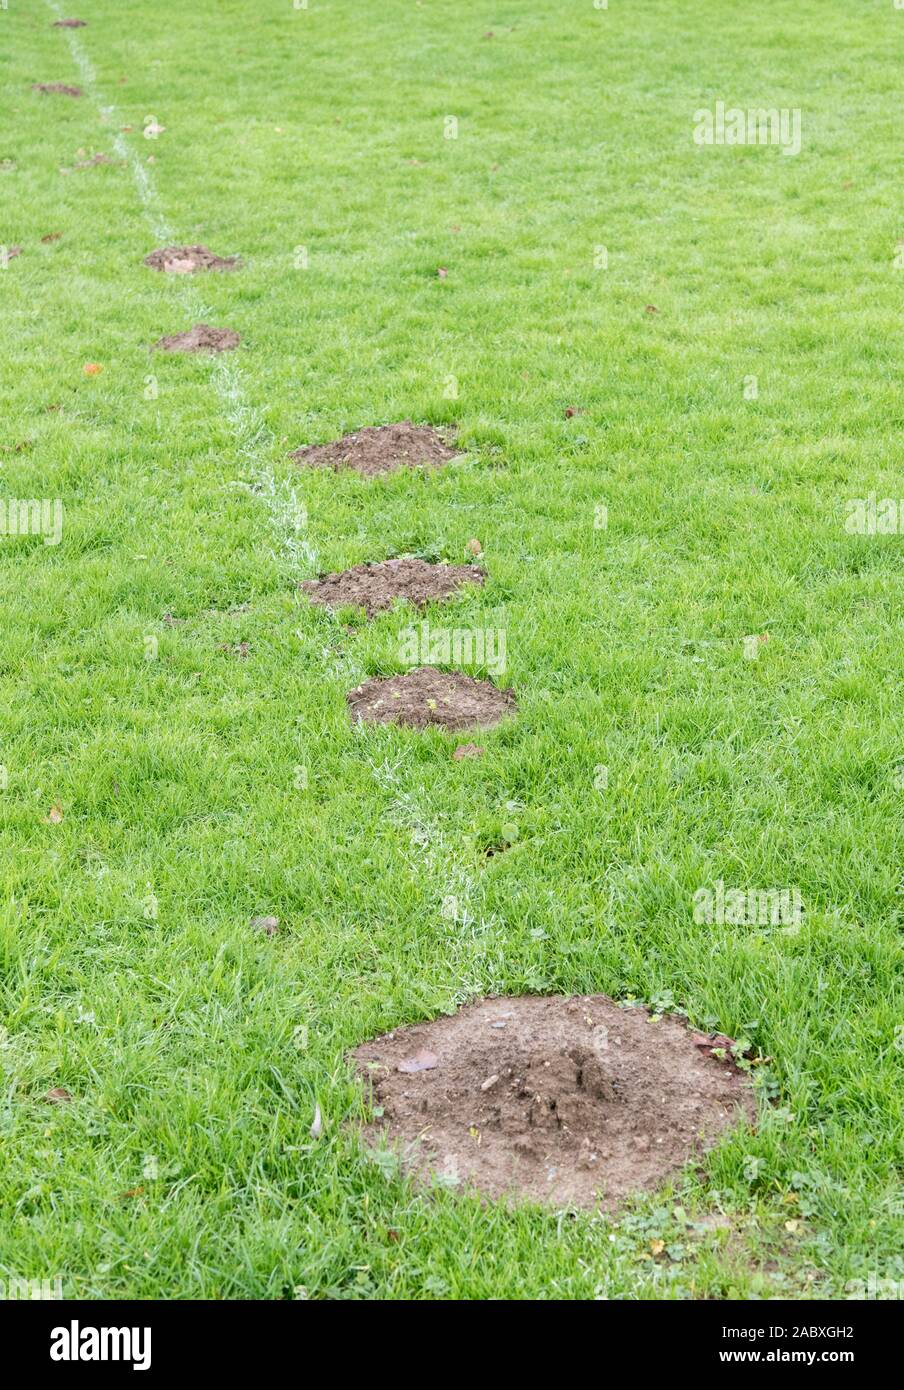 Row of fresh mole hills on the touchline of a local football pitch / rugby ground - metaphor for the saying about making a mountain out of a molehill. Stock Photo